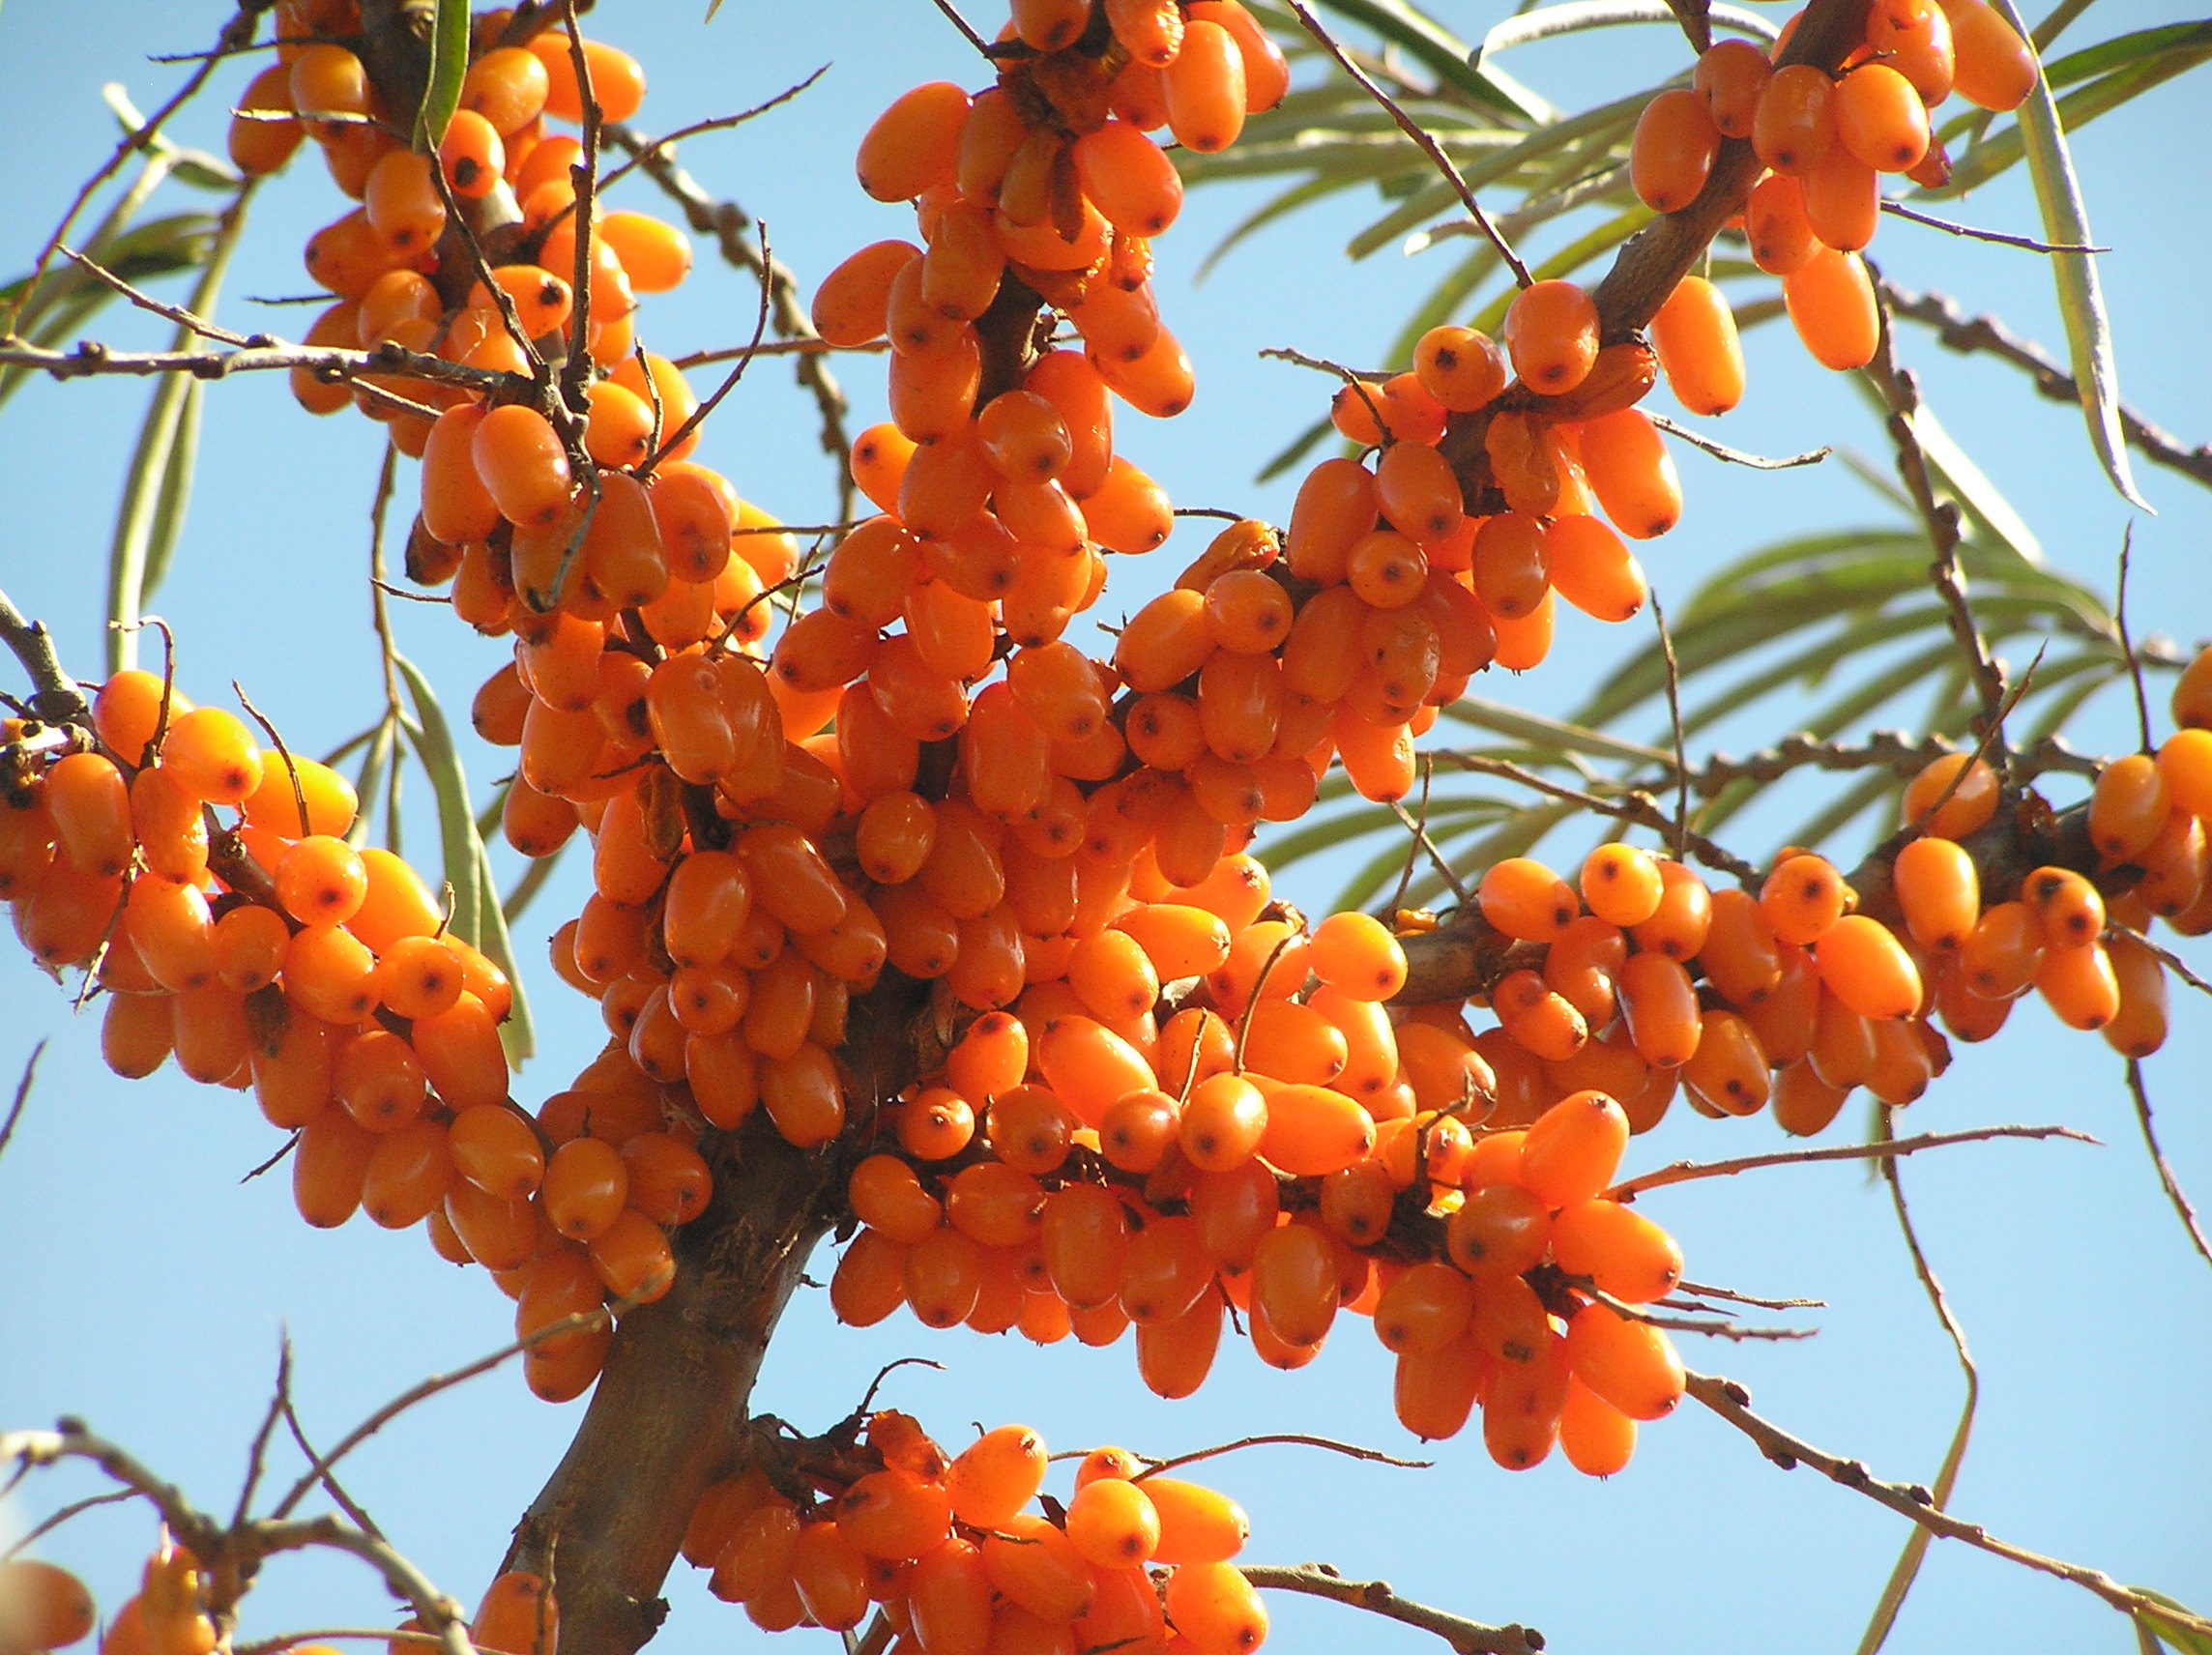 Sea buckthorn tree 39 s seabuckthorn plants shrubs for Soil erosion meaning in hindi